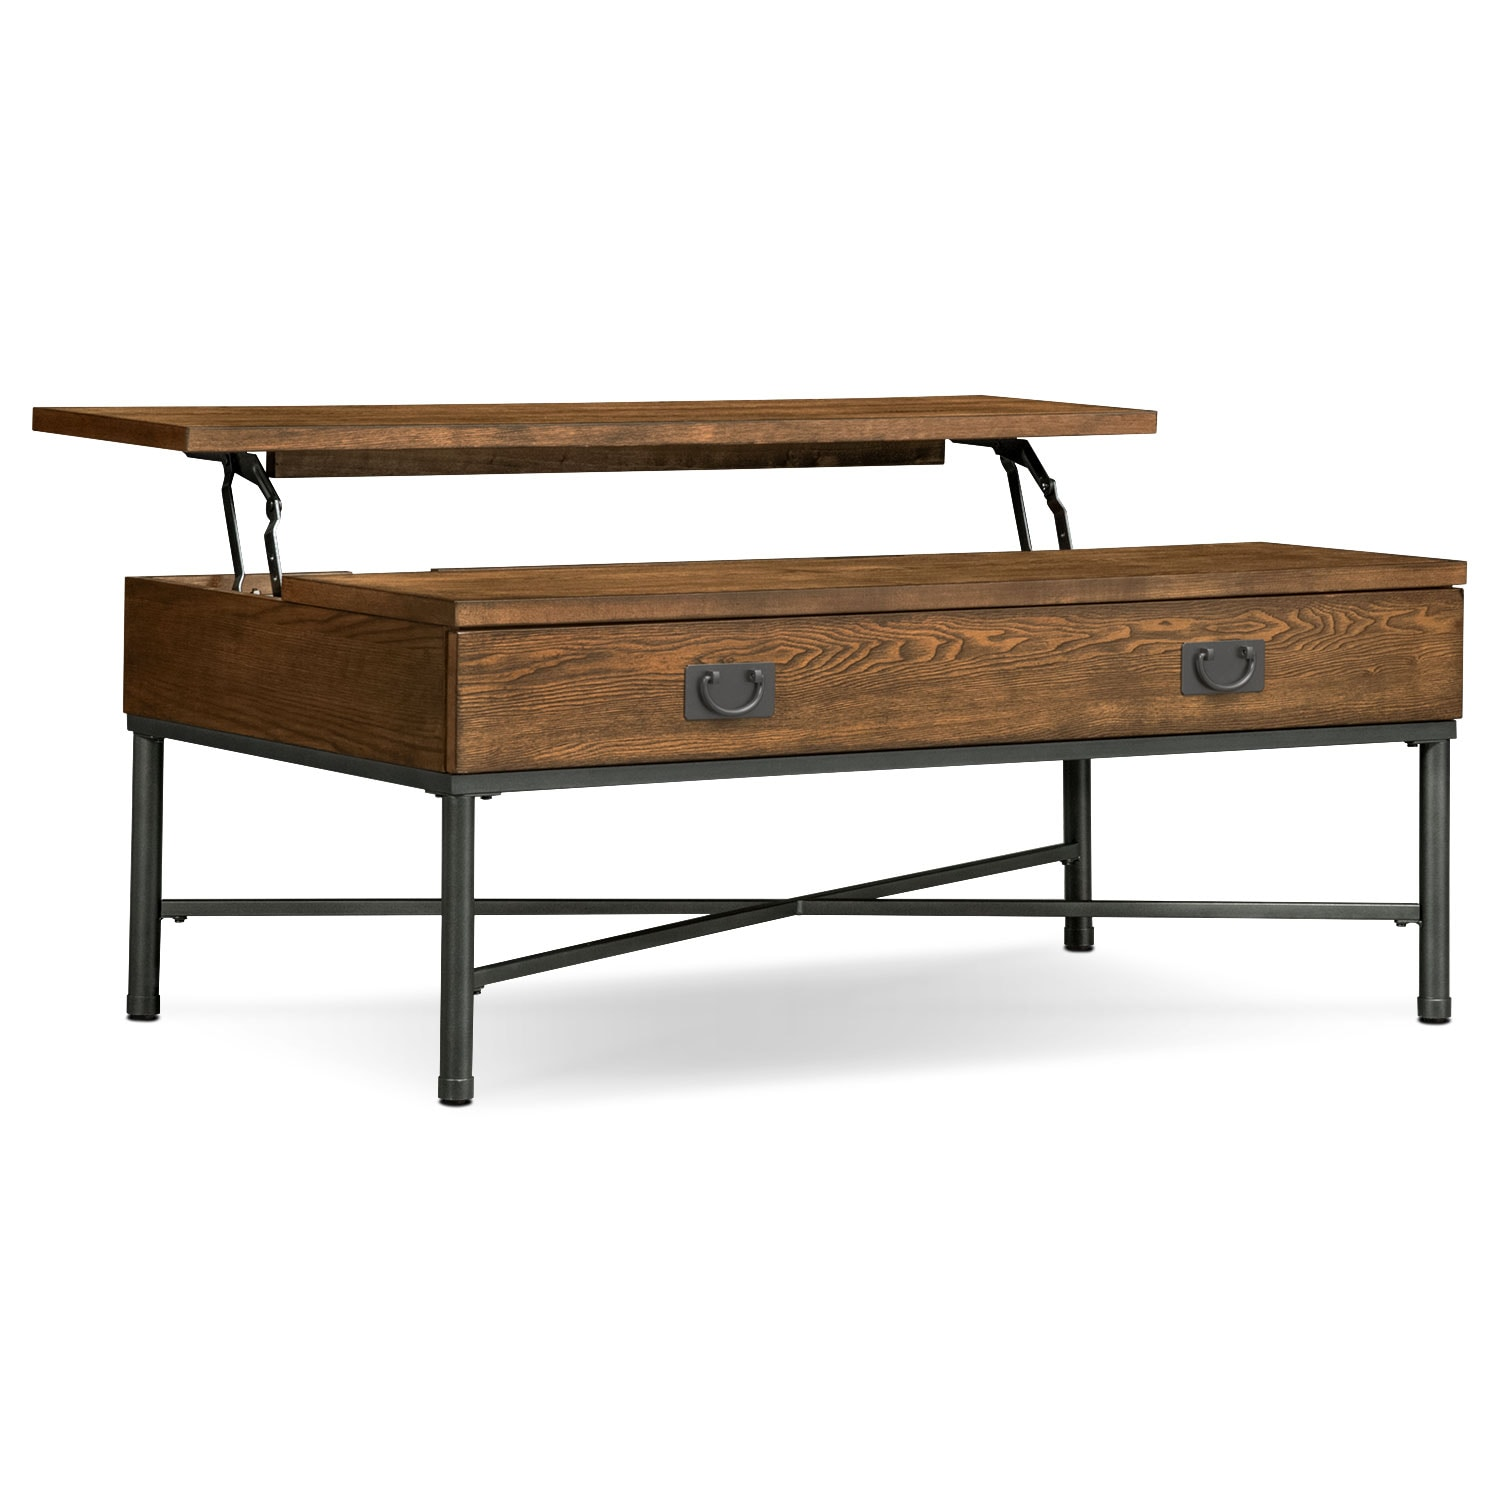 Shipyard Lift-Top Cocktail Table - Nutmeg